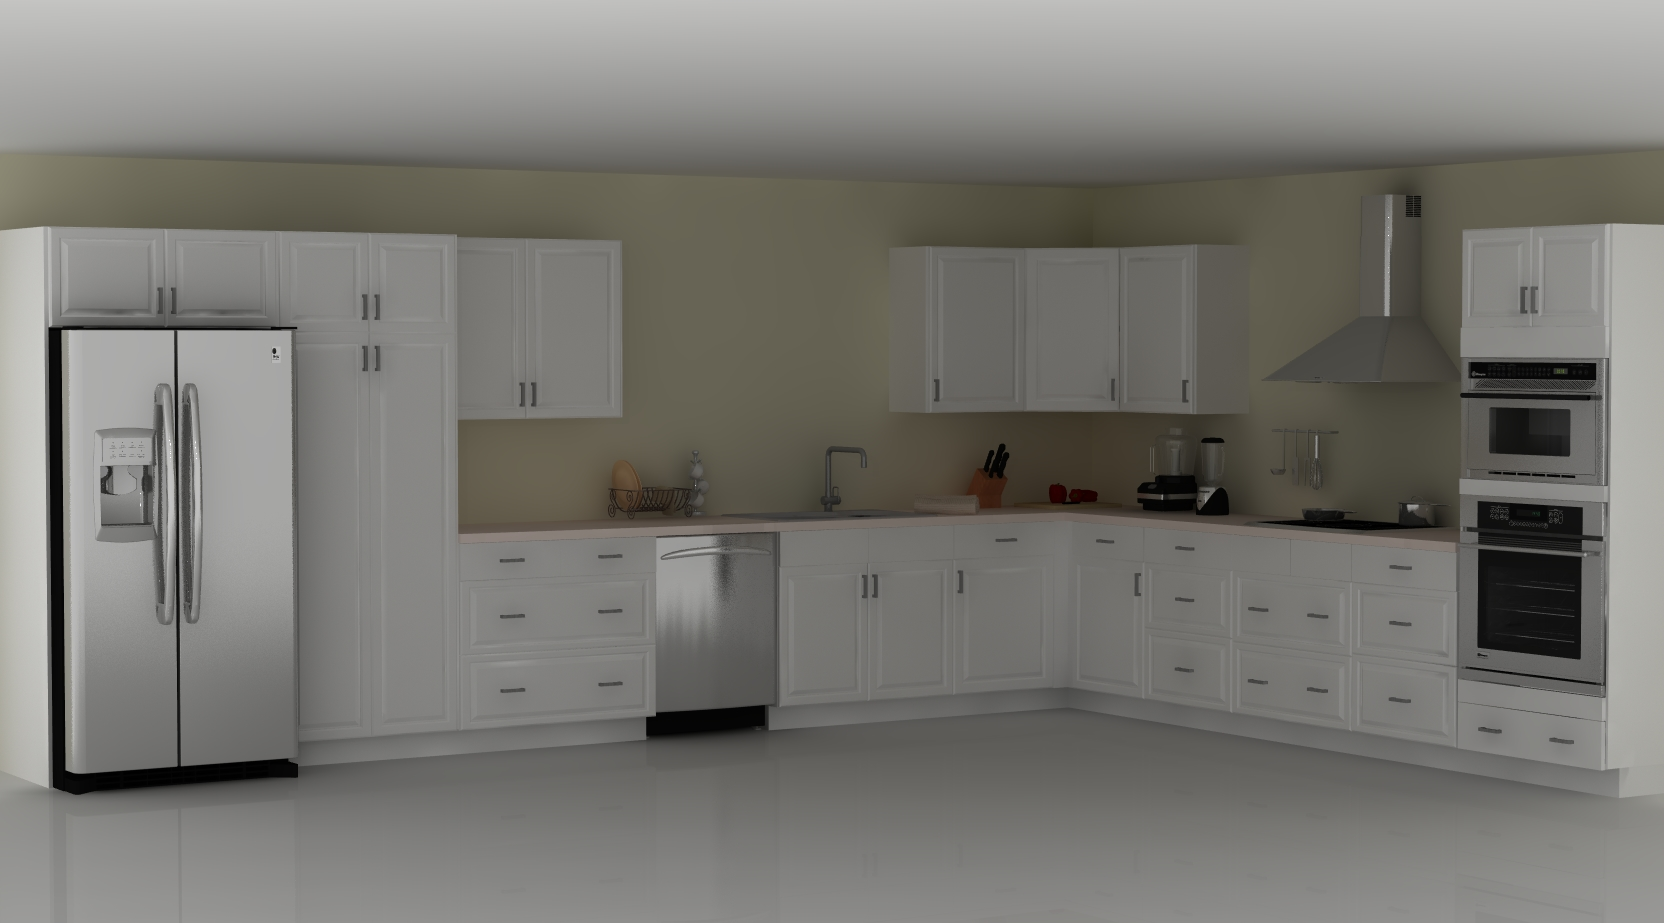 Ikea Kitchen Design Ikea Kitchen Designer Tips Pros And Cons Of An L Shaped